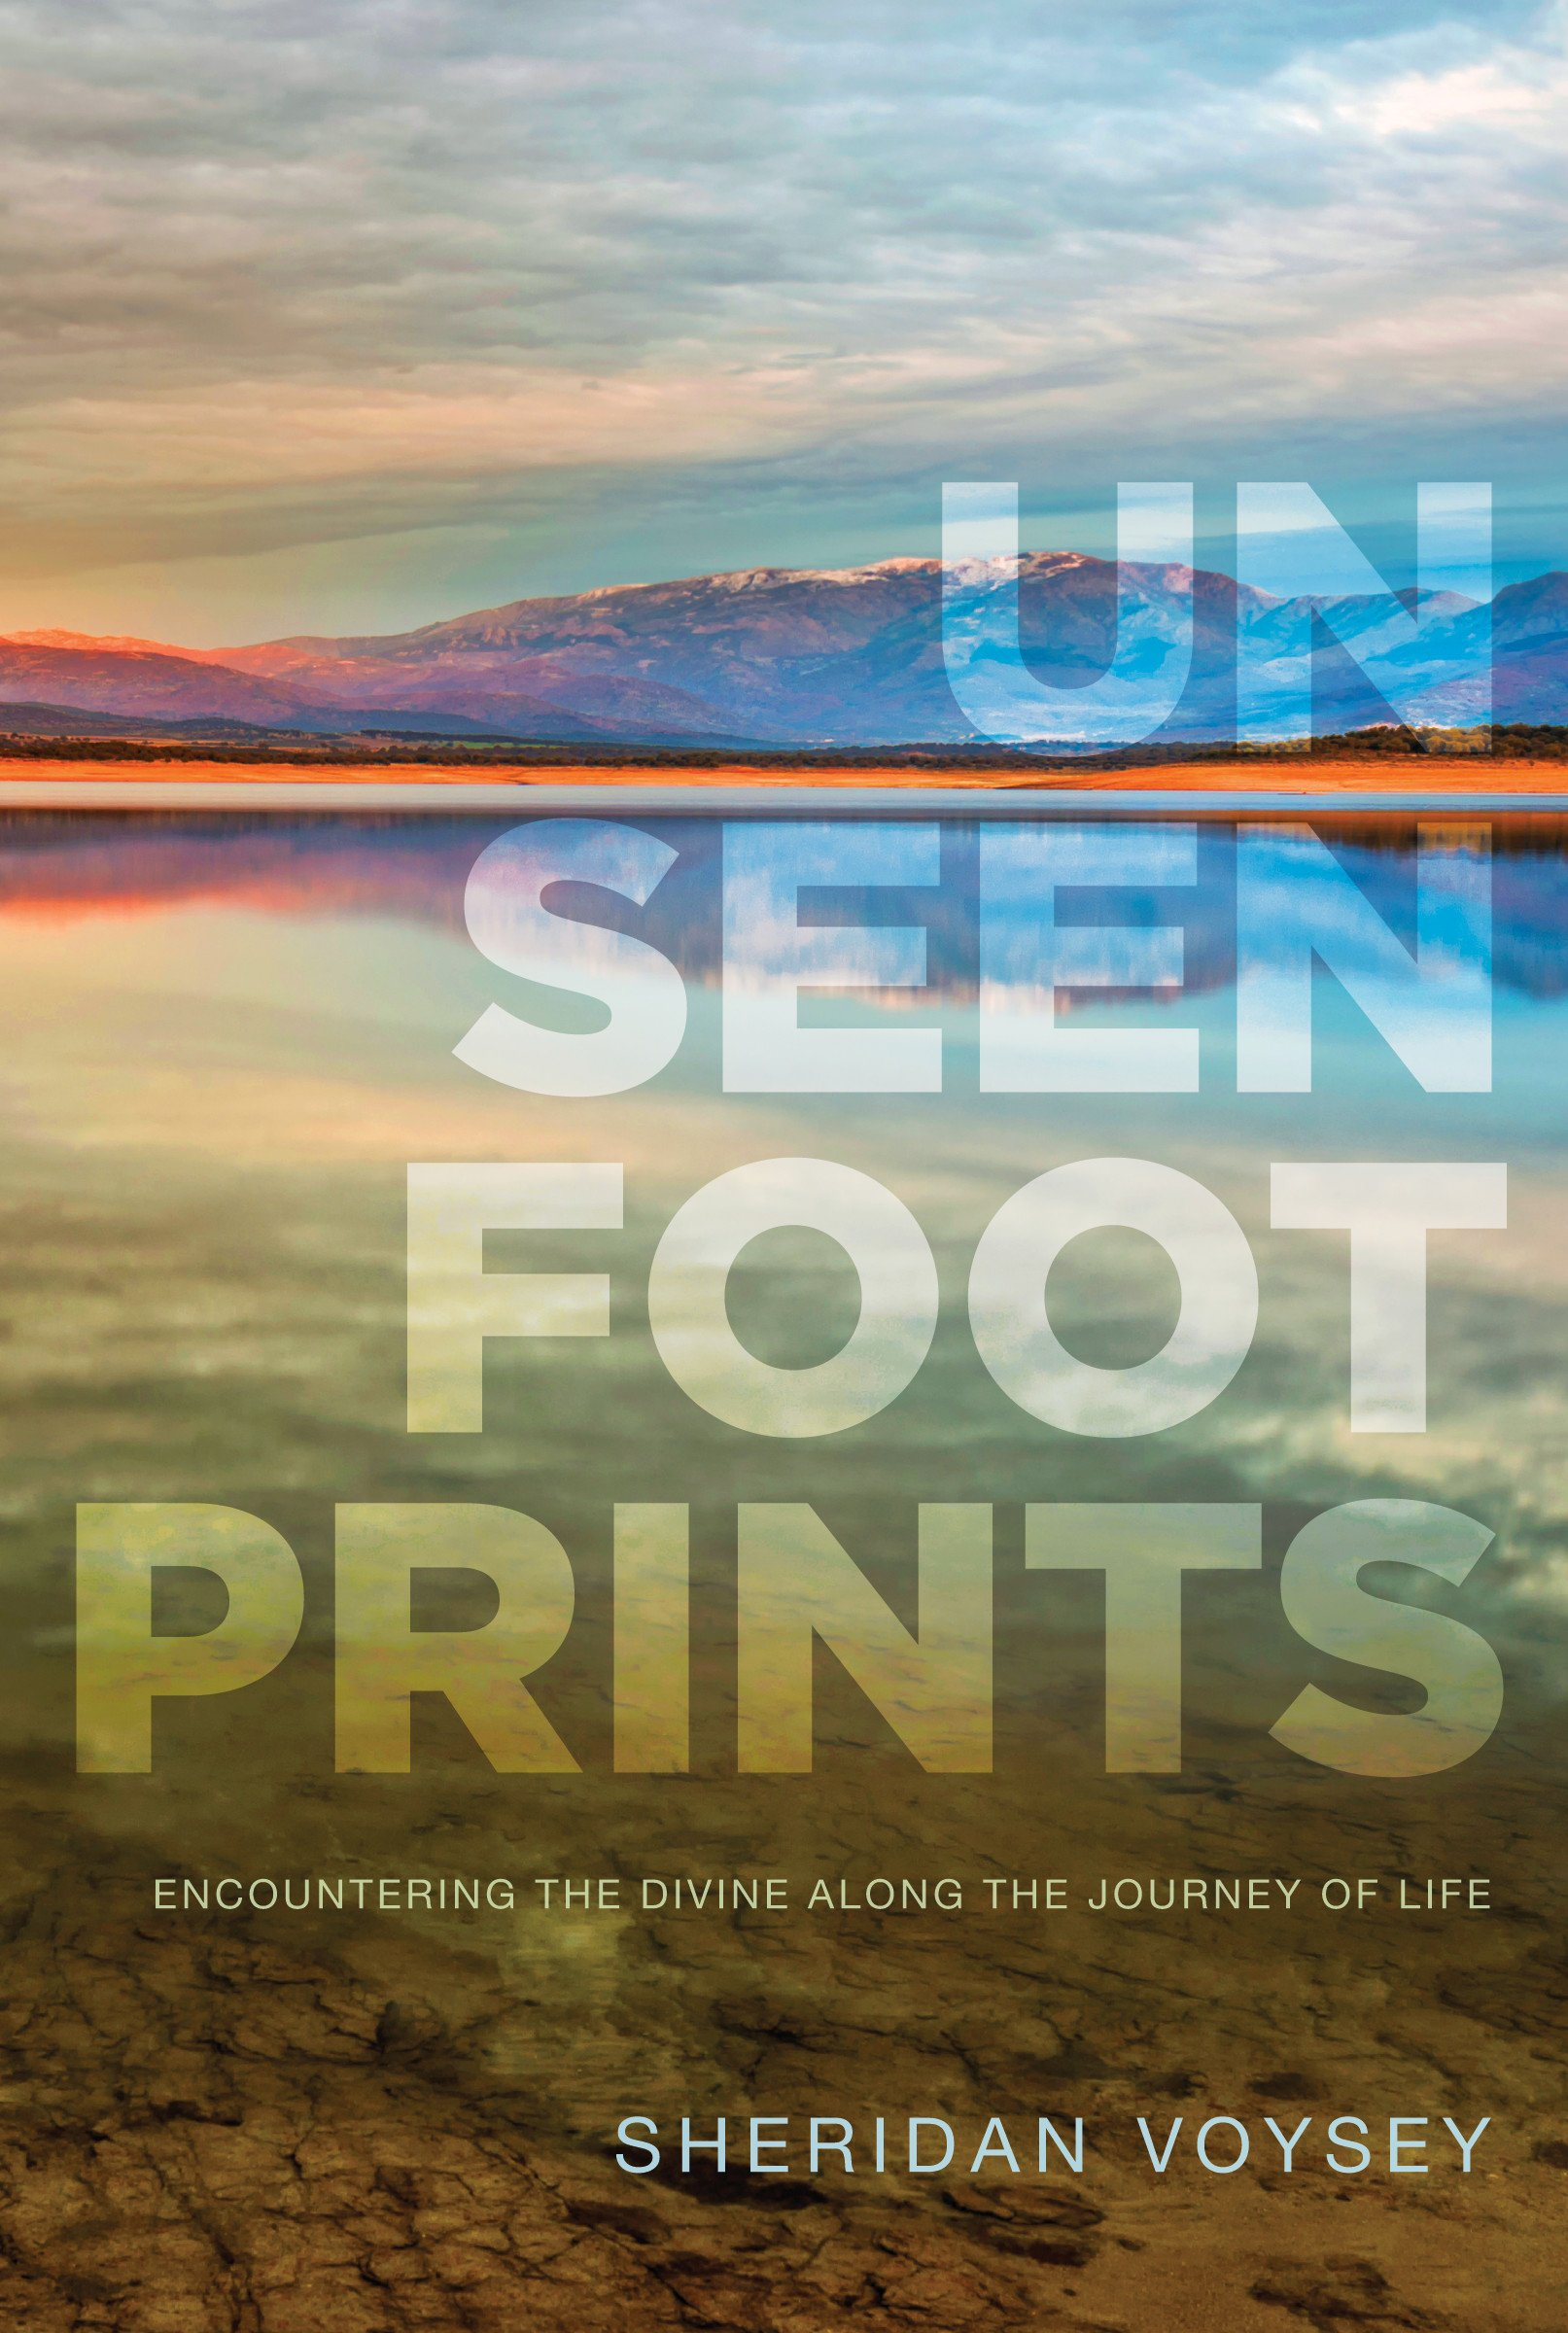 Unseen Footprints: Encountering The Divine Along The Journey Of Life